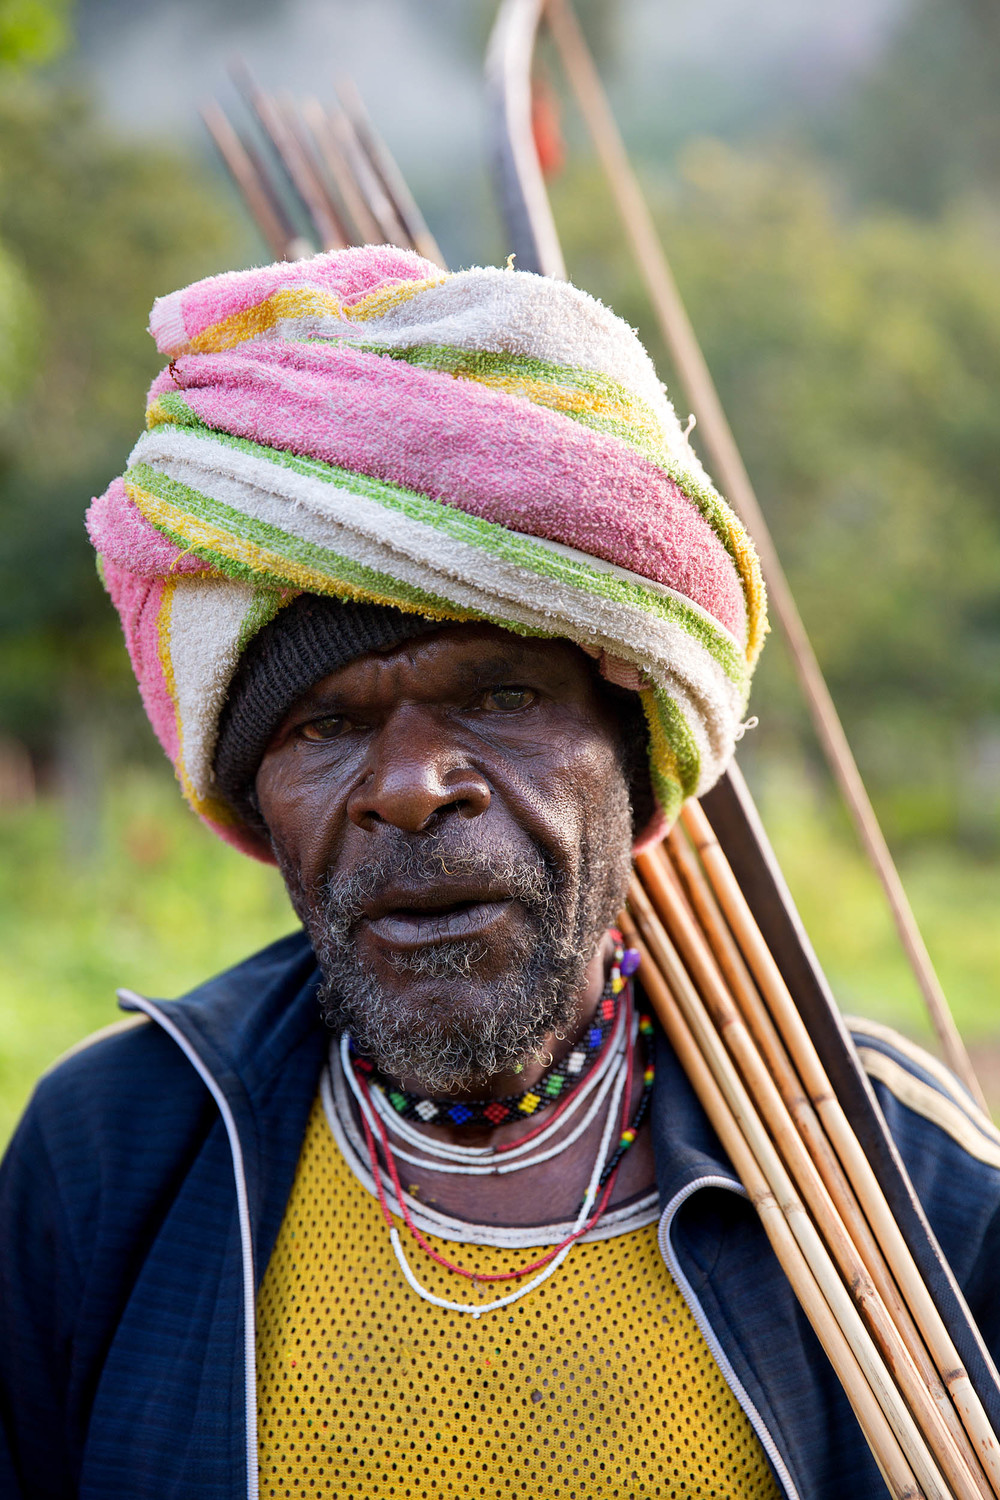 A villager armed with a bow and arrows.